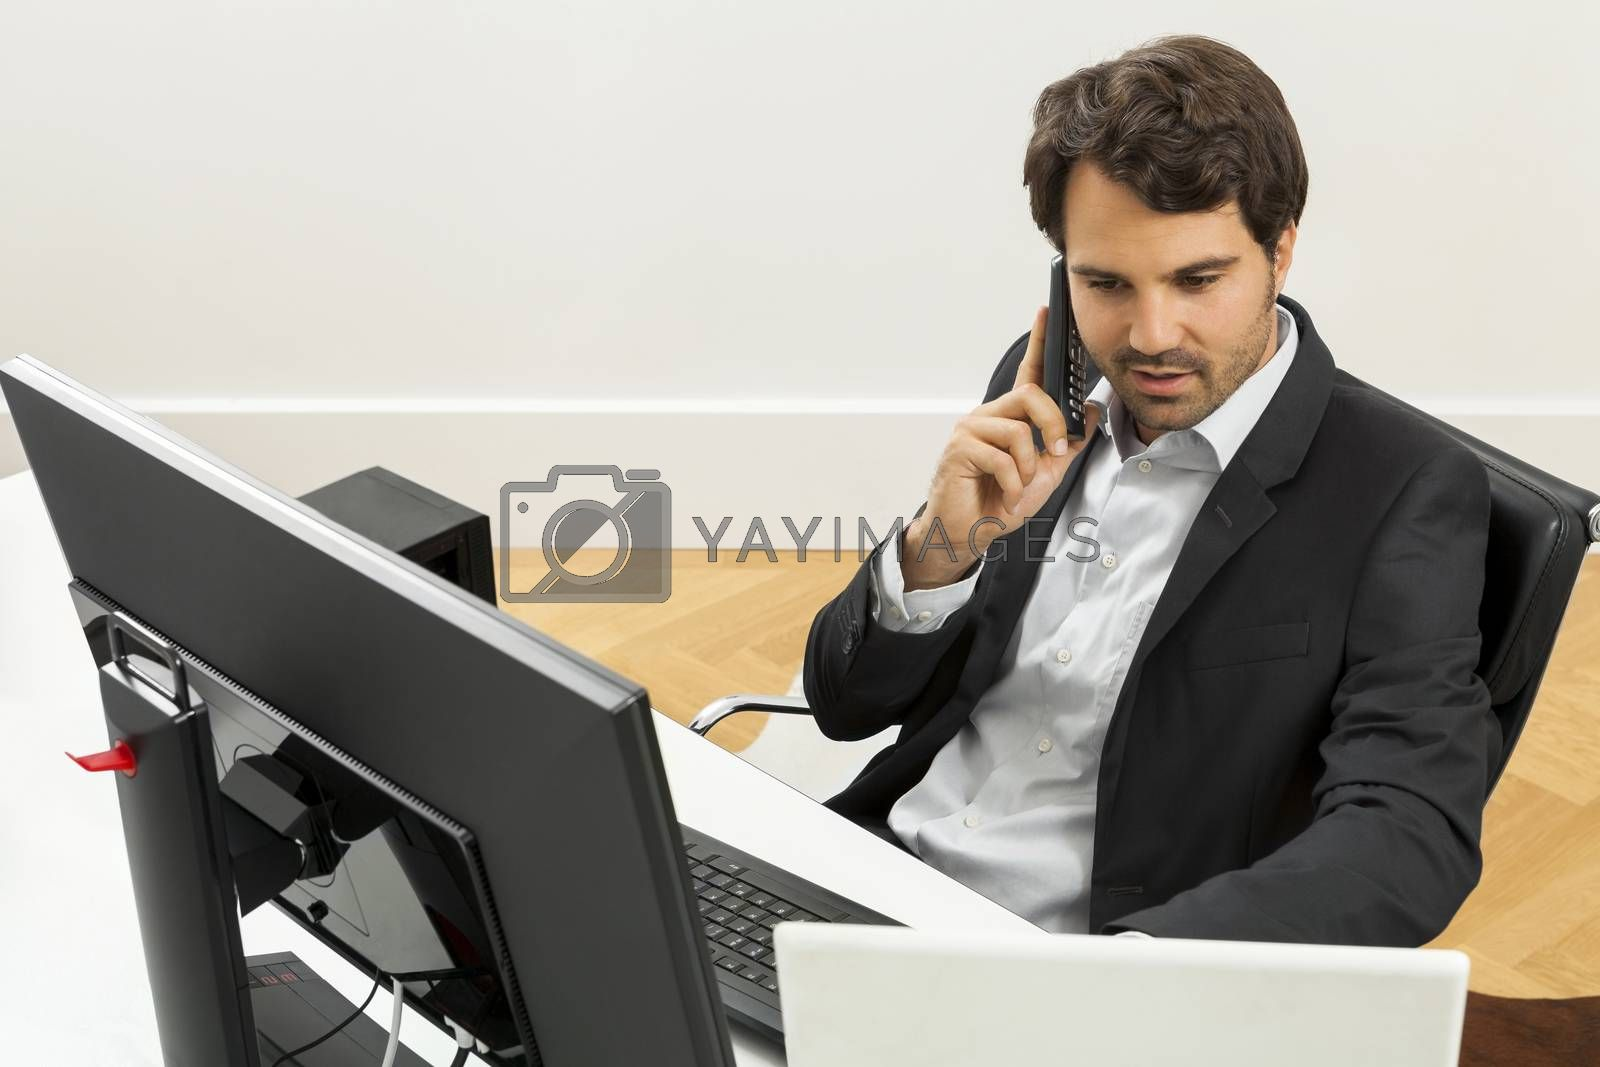 Successful businessman working in his office sitting in a chair at his desk and desktop computer listening to a call on his mobile phone, high angle side view